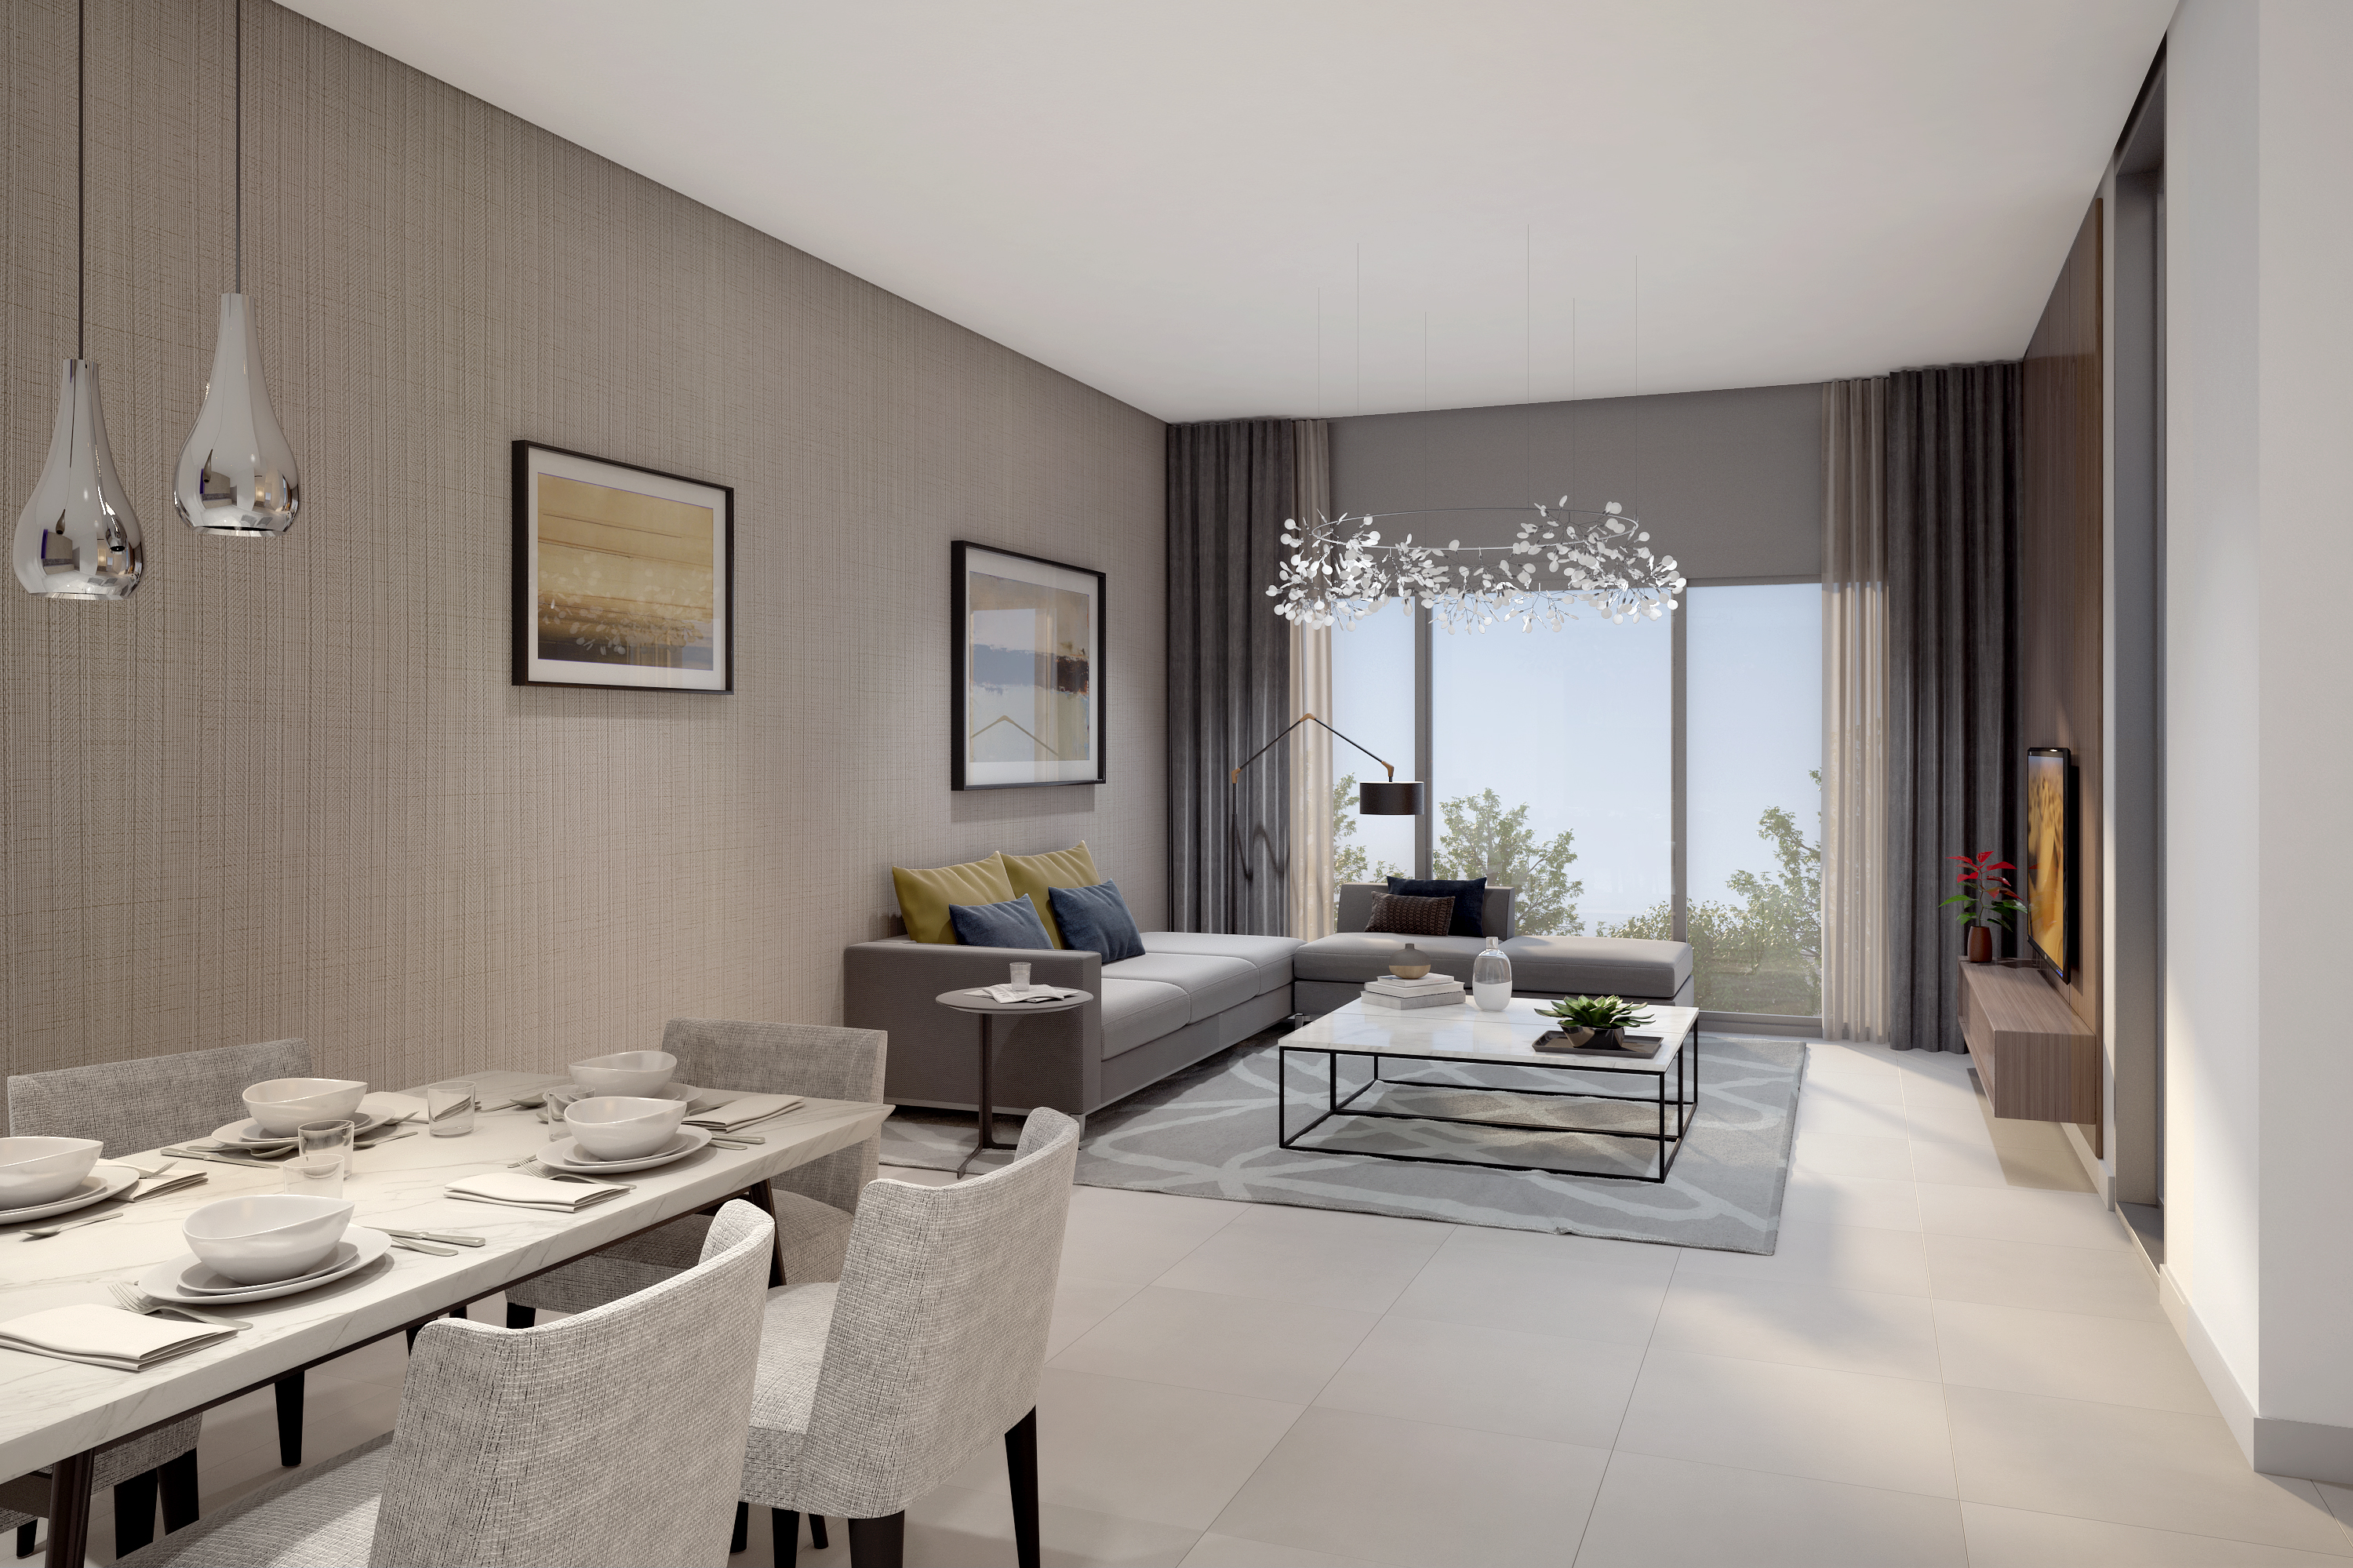 608_parklane_intercon_01_livingCluster_final_02